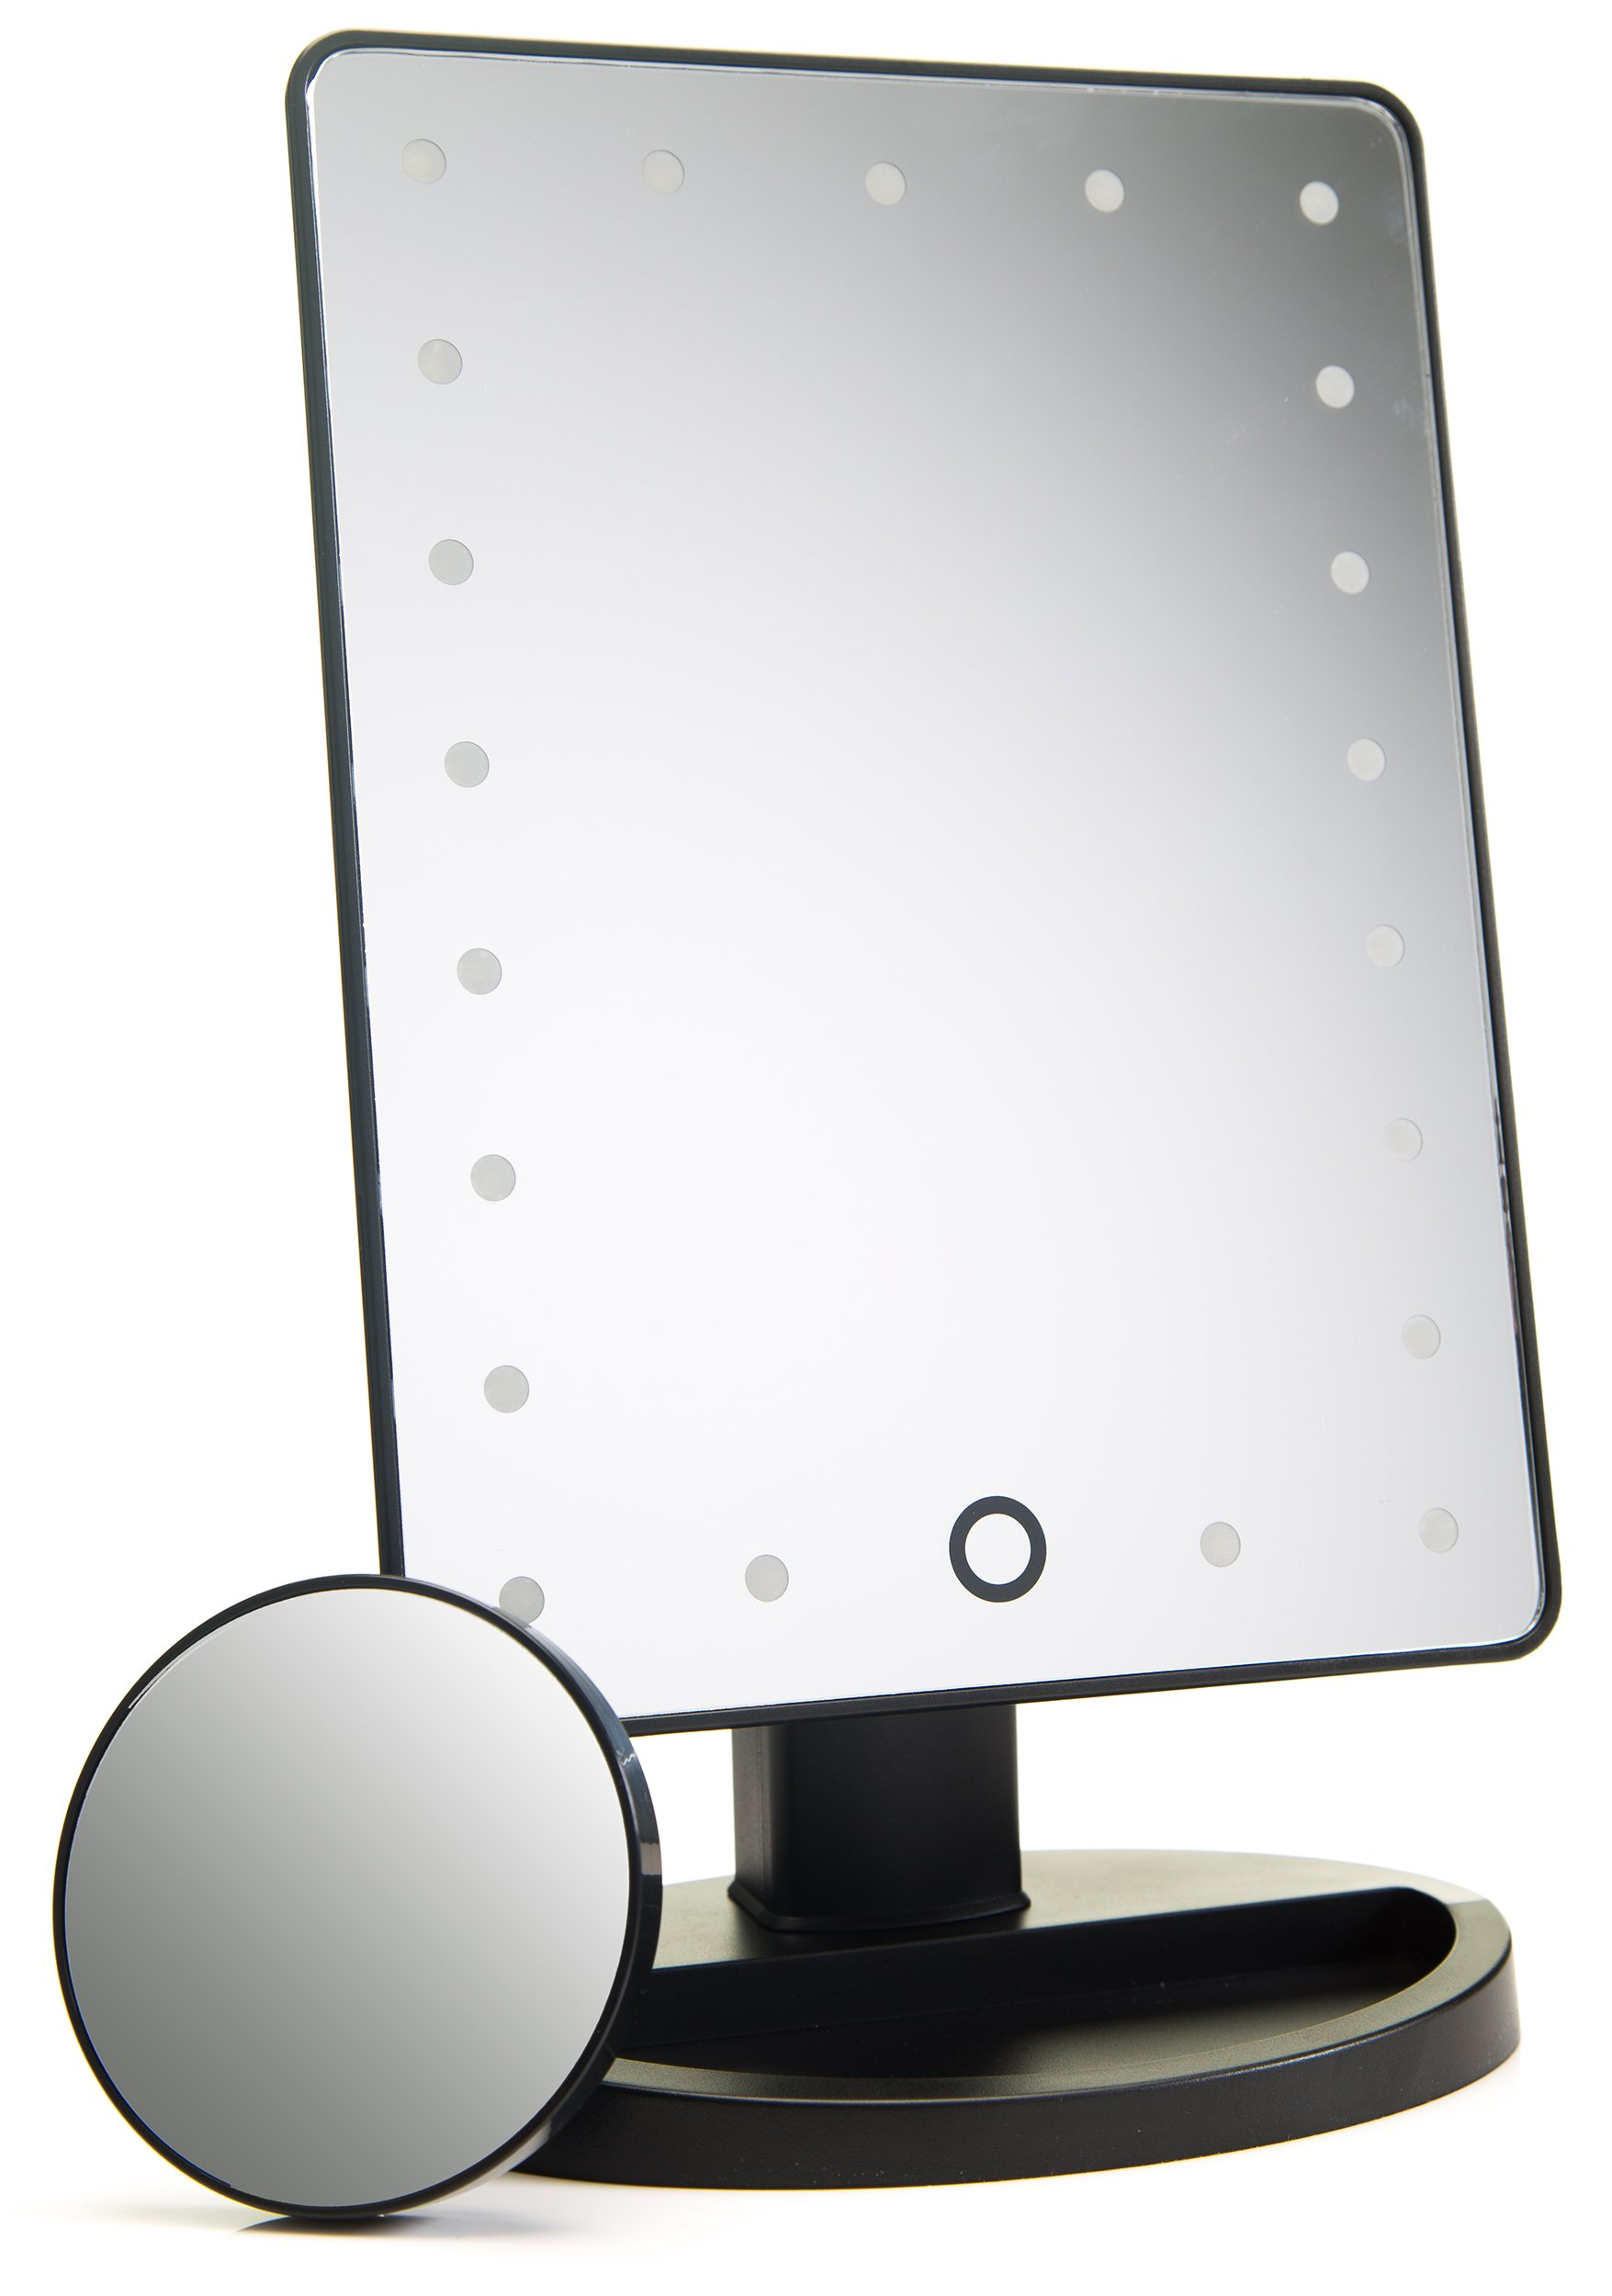 Absolutely Luvly Lighted Makeup Mirror with Magnification | Vanity Mirror with Lights -Touch Screen Dimming -Small Detachable 10x Magnifying Makeup Mirror -Portable Makeup Accessories | Make Up Mirror by Absolutely Luvly